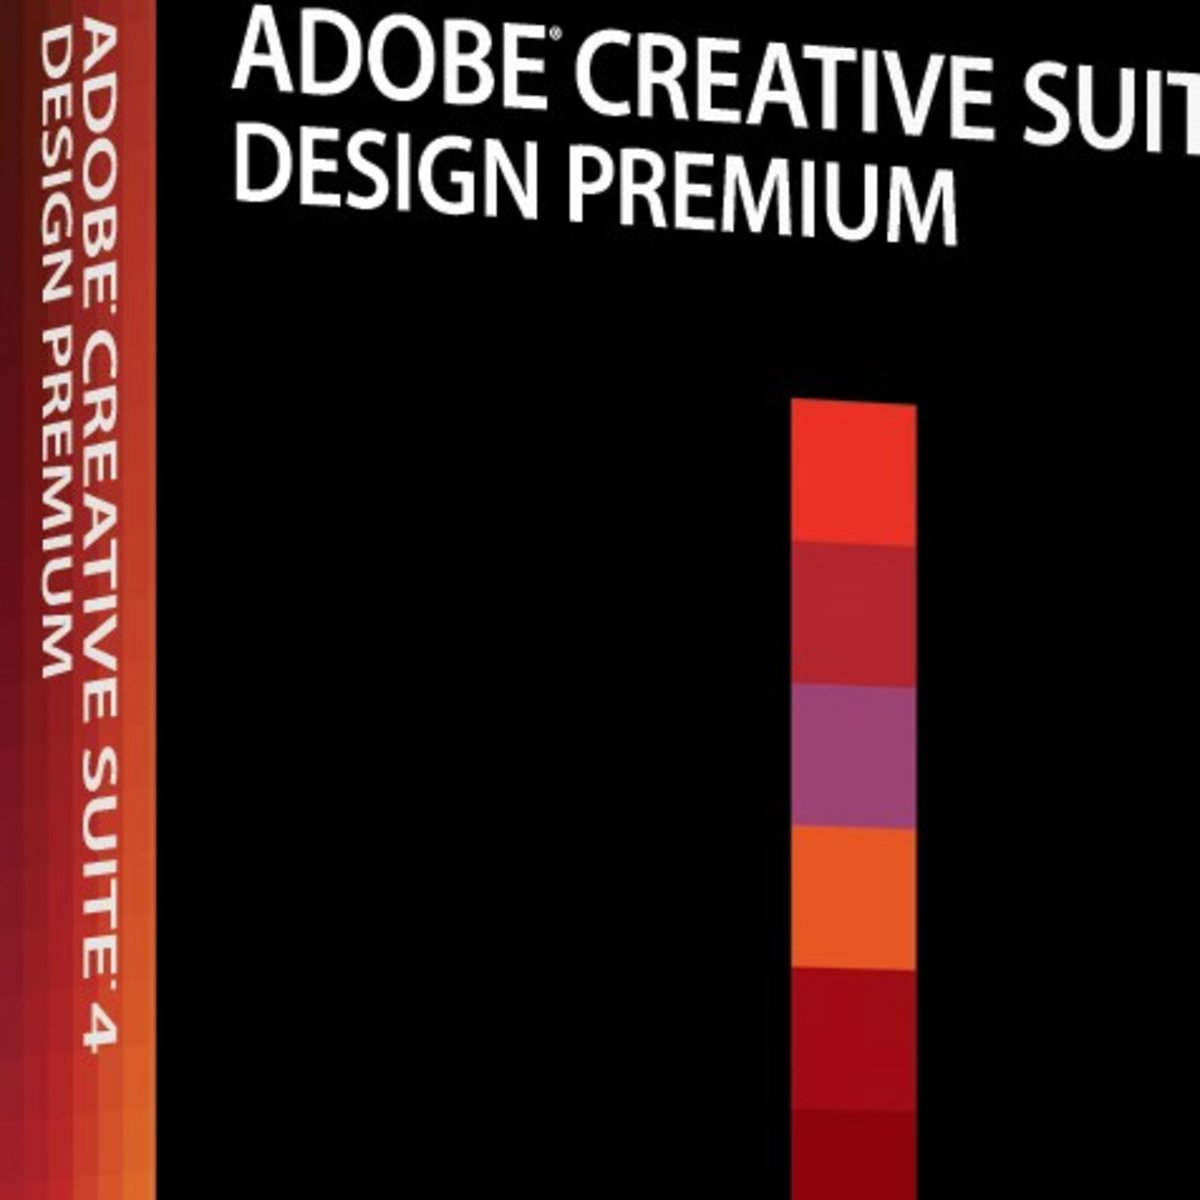 Adobe Design Premium For Mac